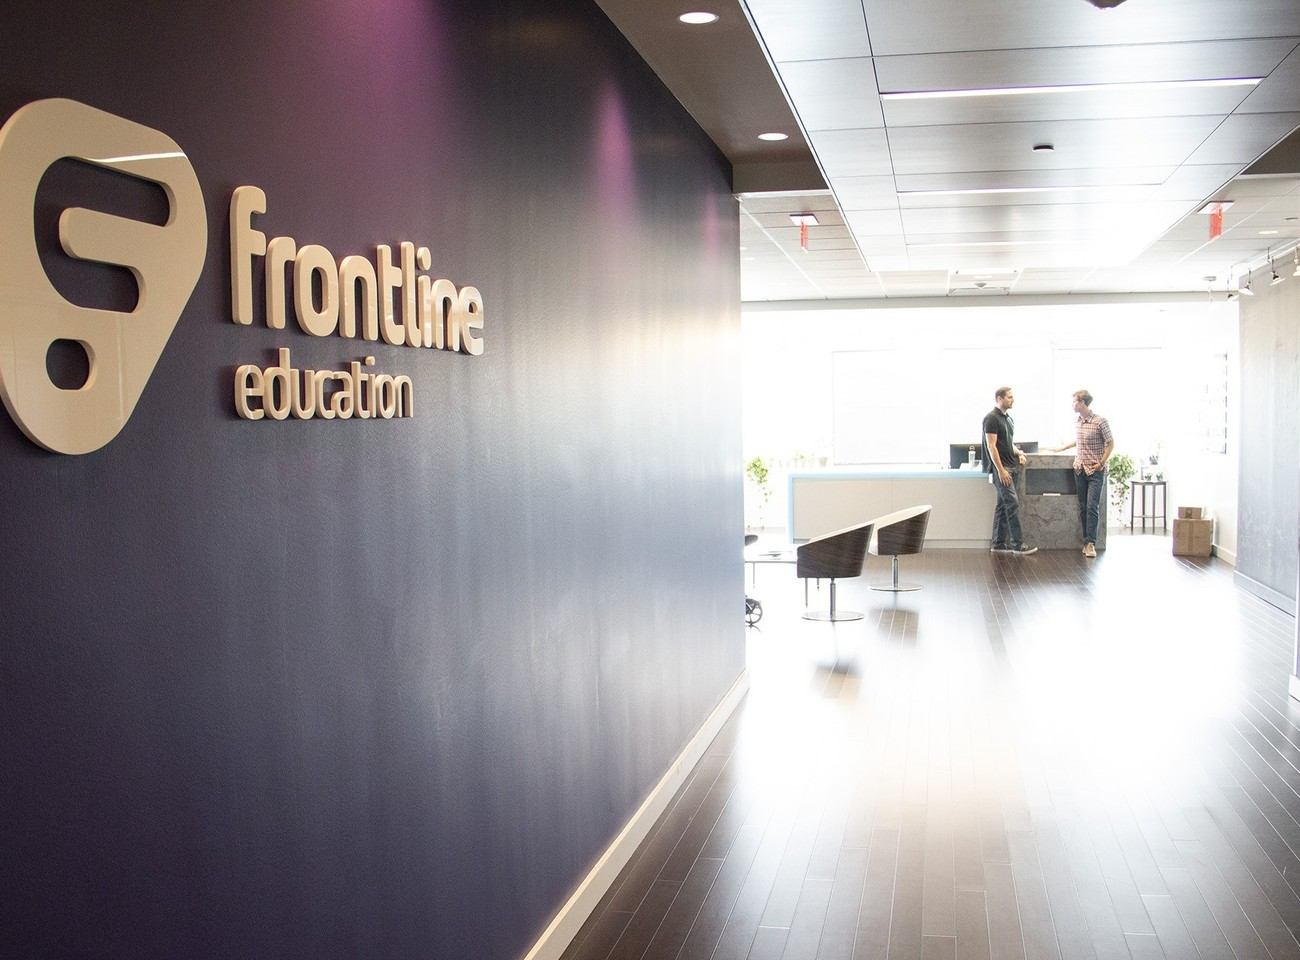 Frontline Education Careers